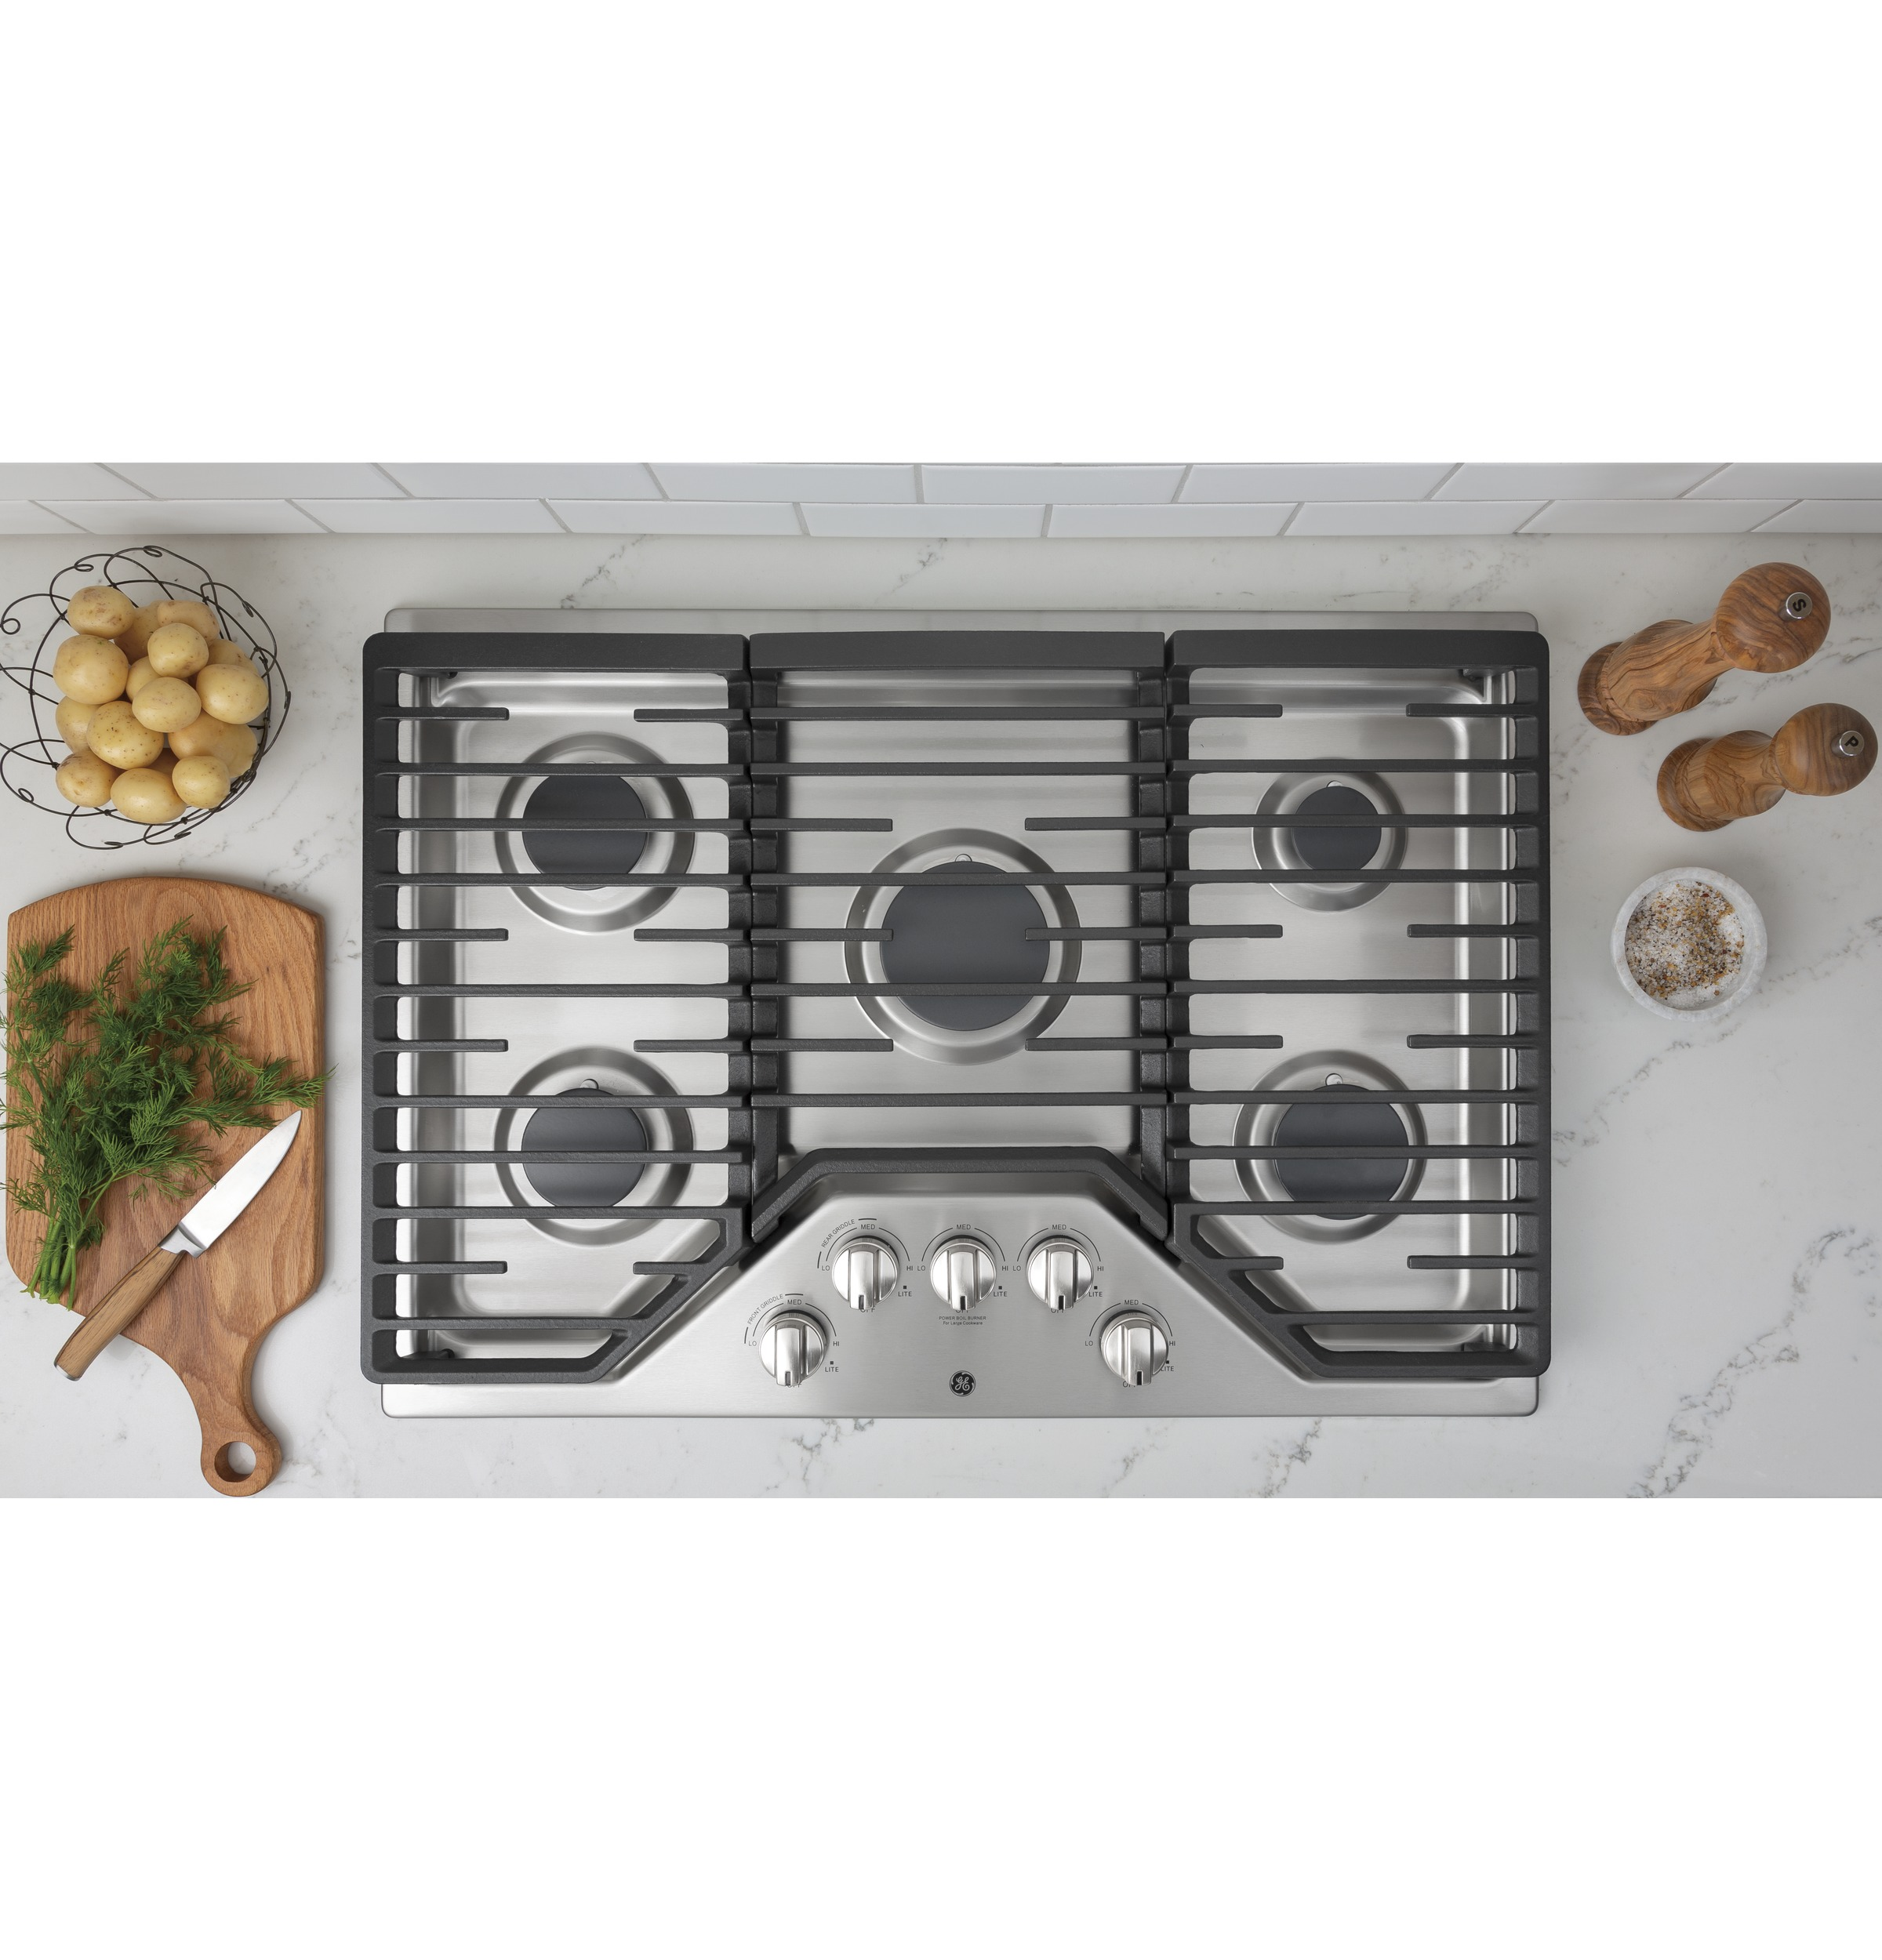 "Model: JGP5030SLSS | GE GE® 30"" Built-In Gas Cooktop with 5 Burners and Dishwasher Safe Grates"